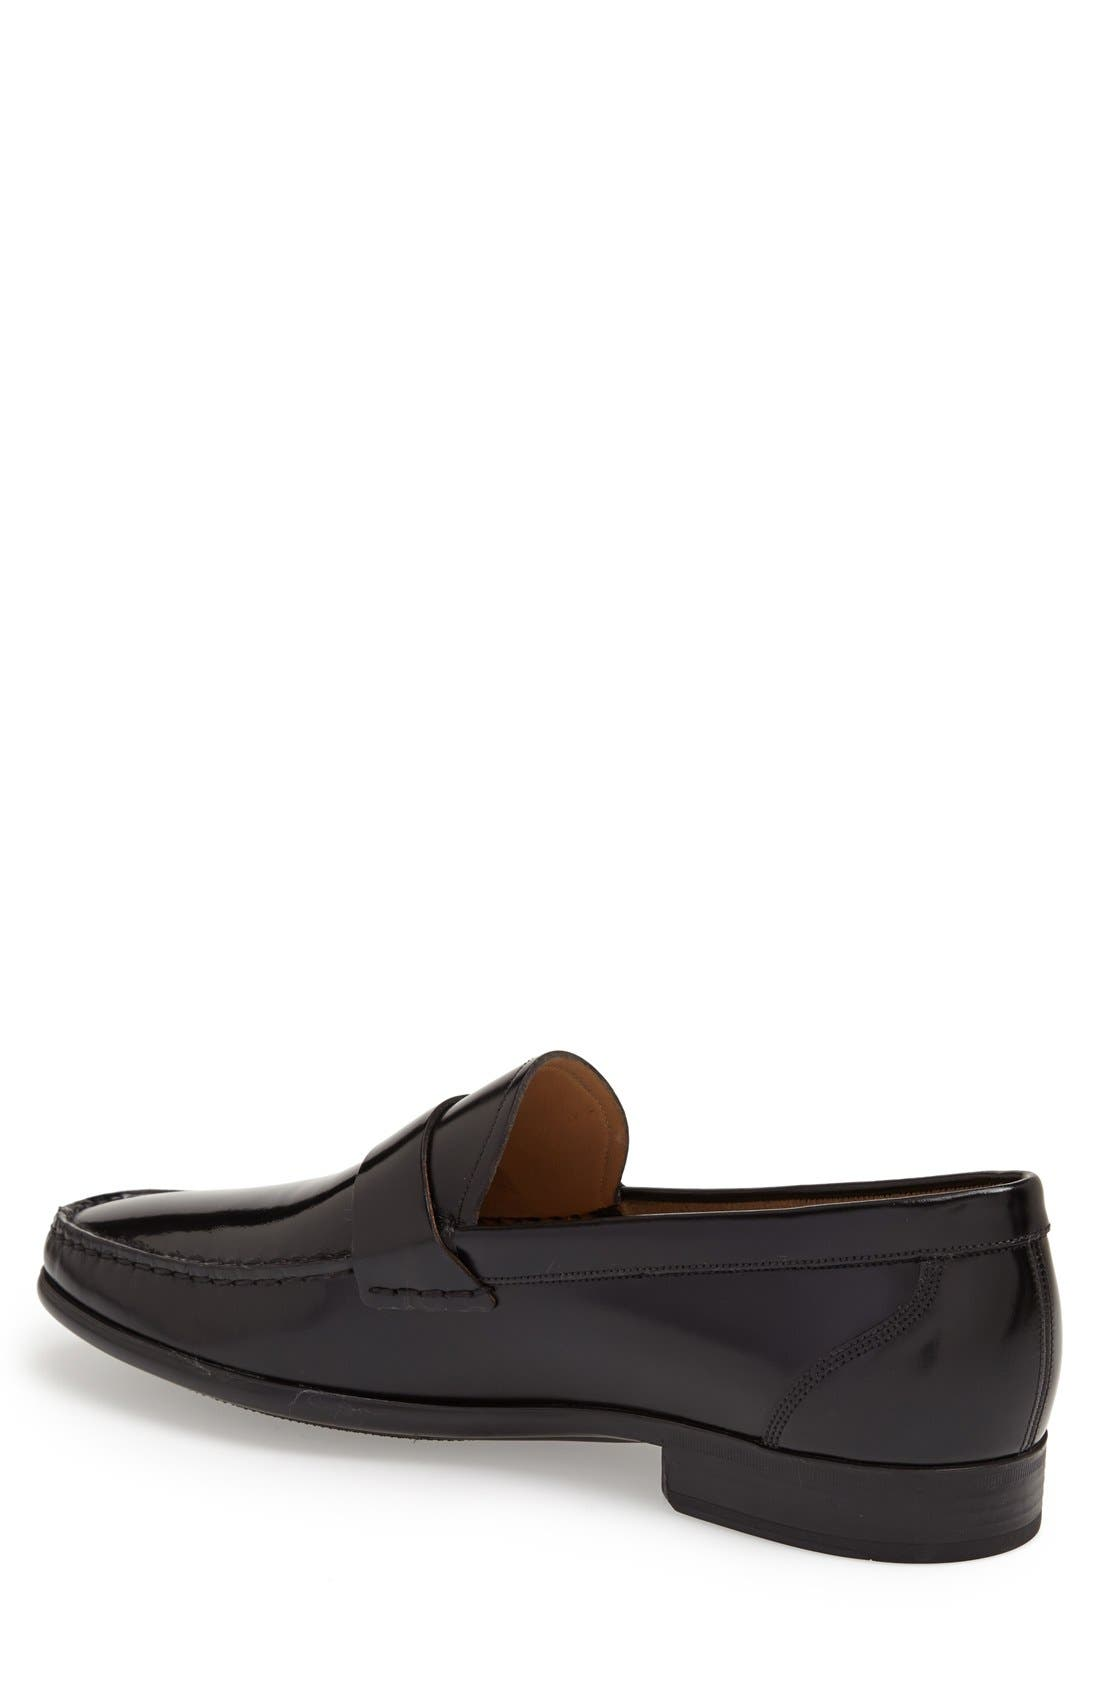 Alternate Image 2  - Bally 'Colbar' Bit Loafer (Men)